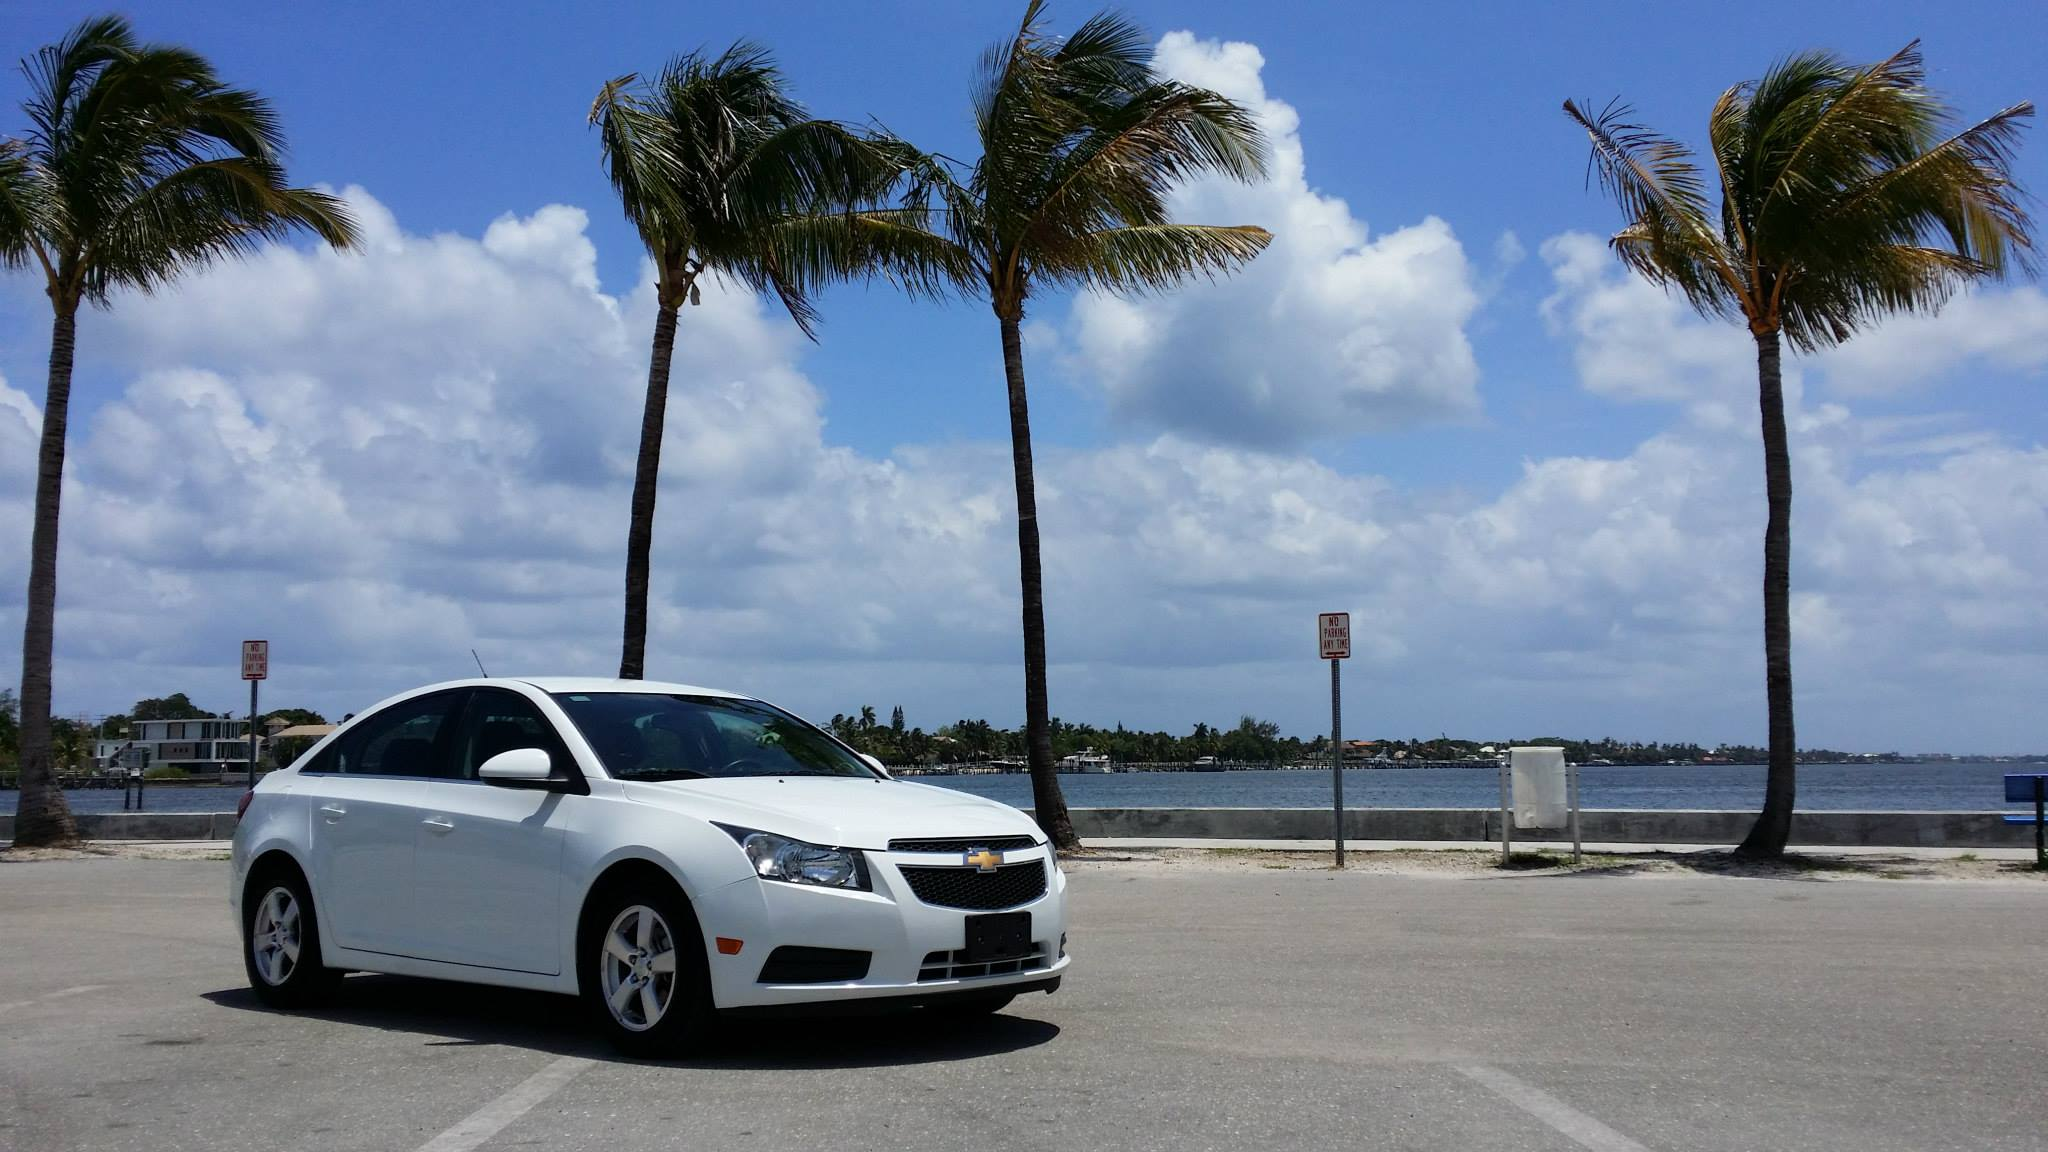 Ambassador Rent A Car - Lake Worth Informative